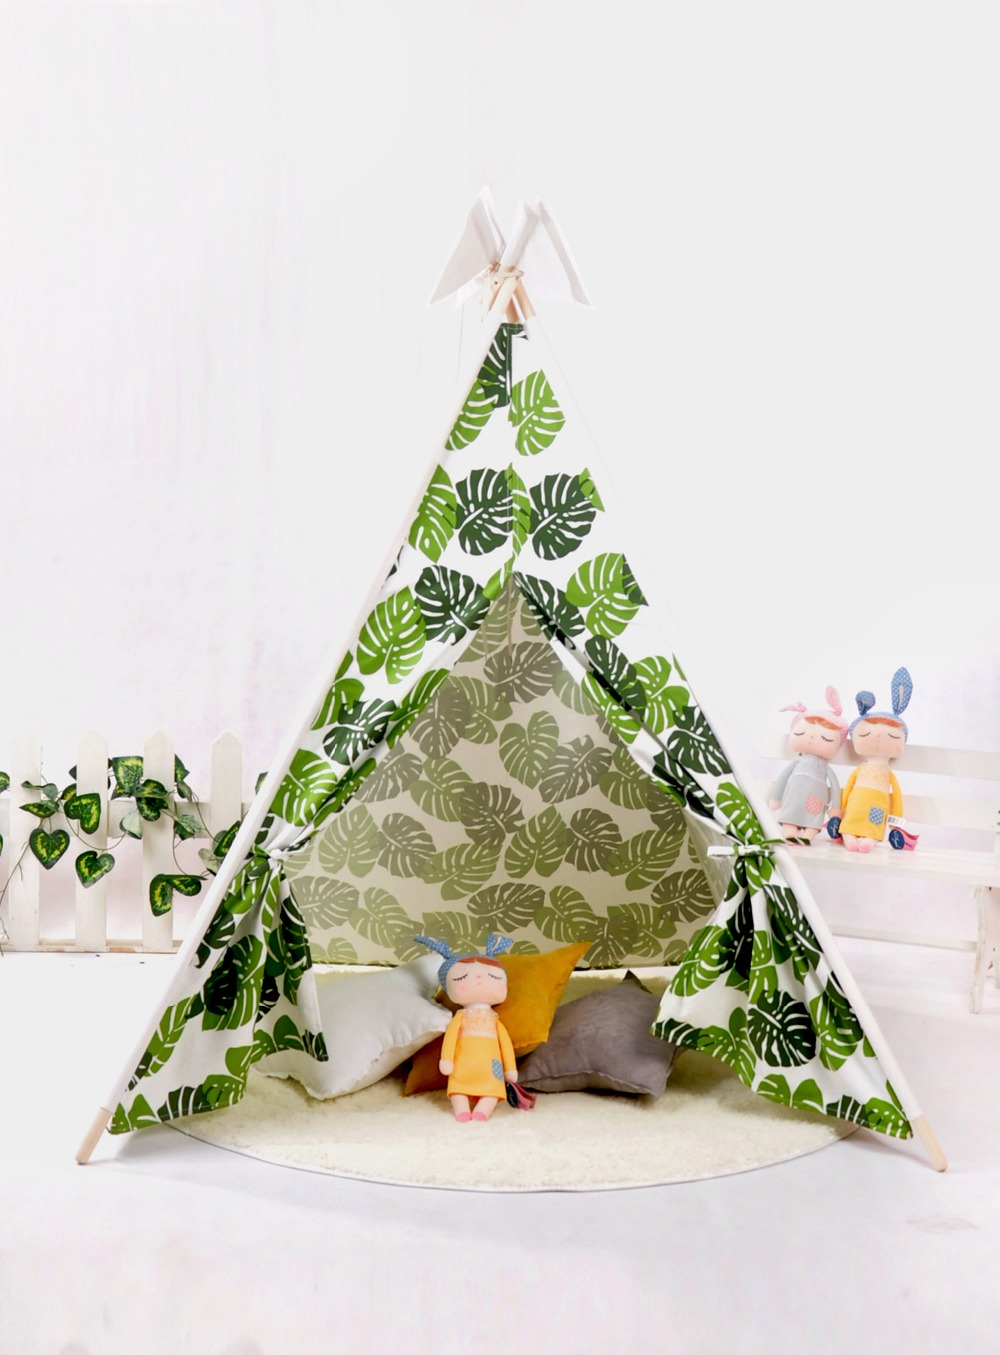 Teepee Indian Tent Tipi Spielzelt Children's Wigwam Tent Tp Tent free shipping kid tent indian teepee tents